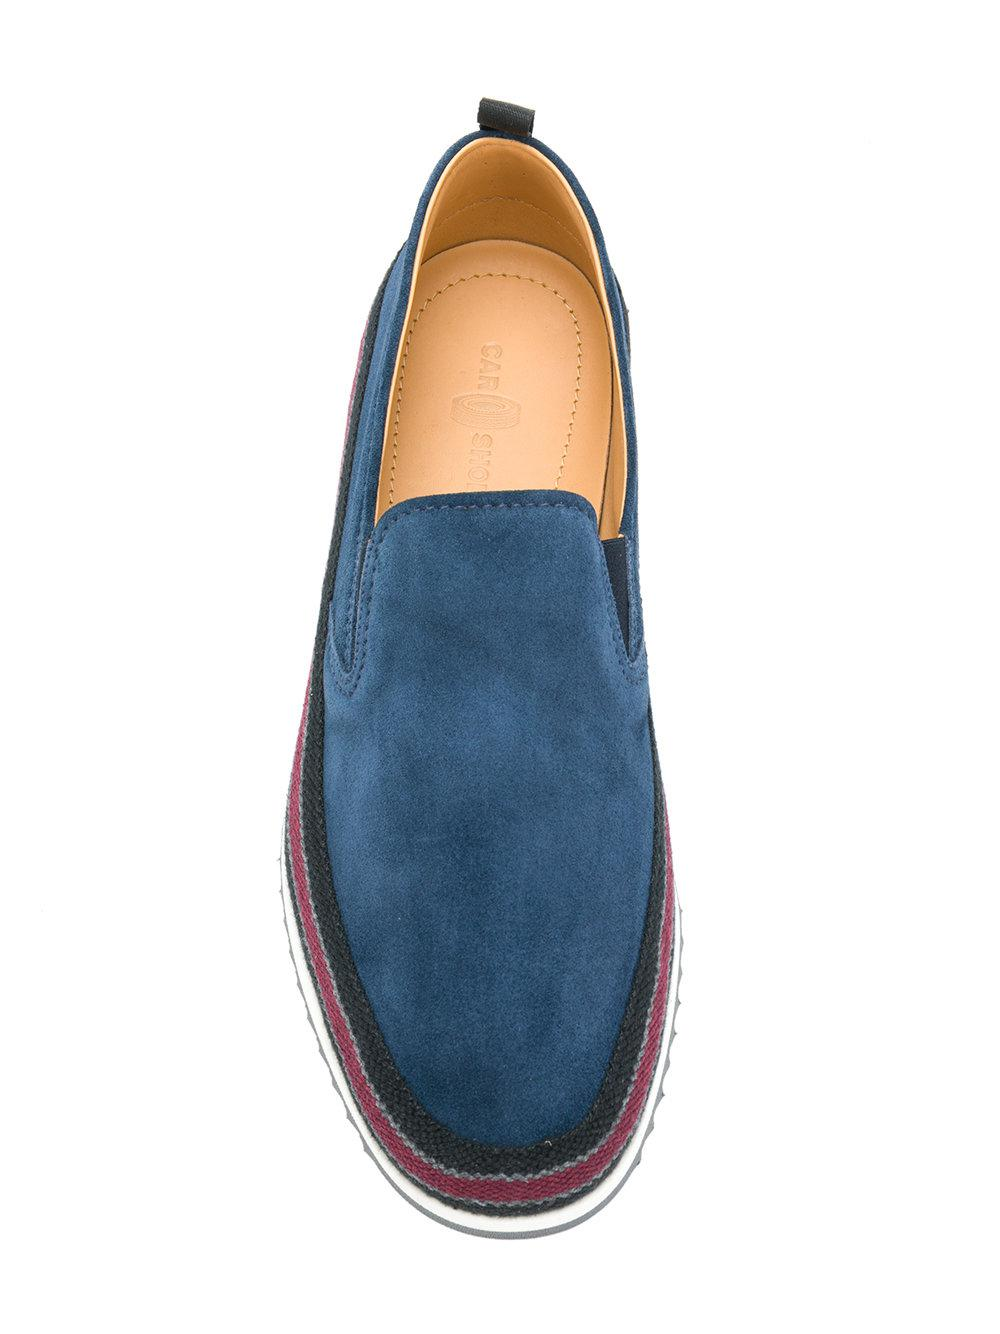 Car Shoe Leather Slip-on Sneakers in Blue